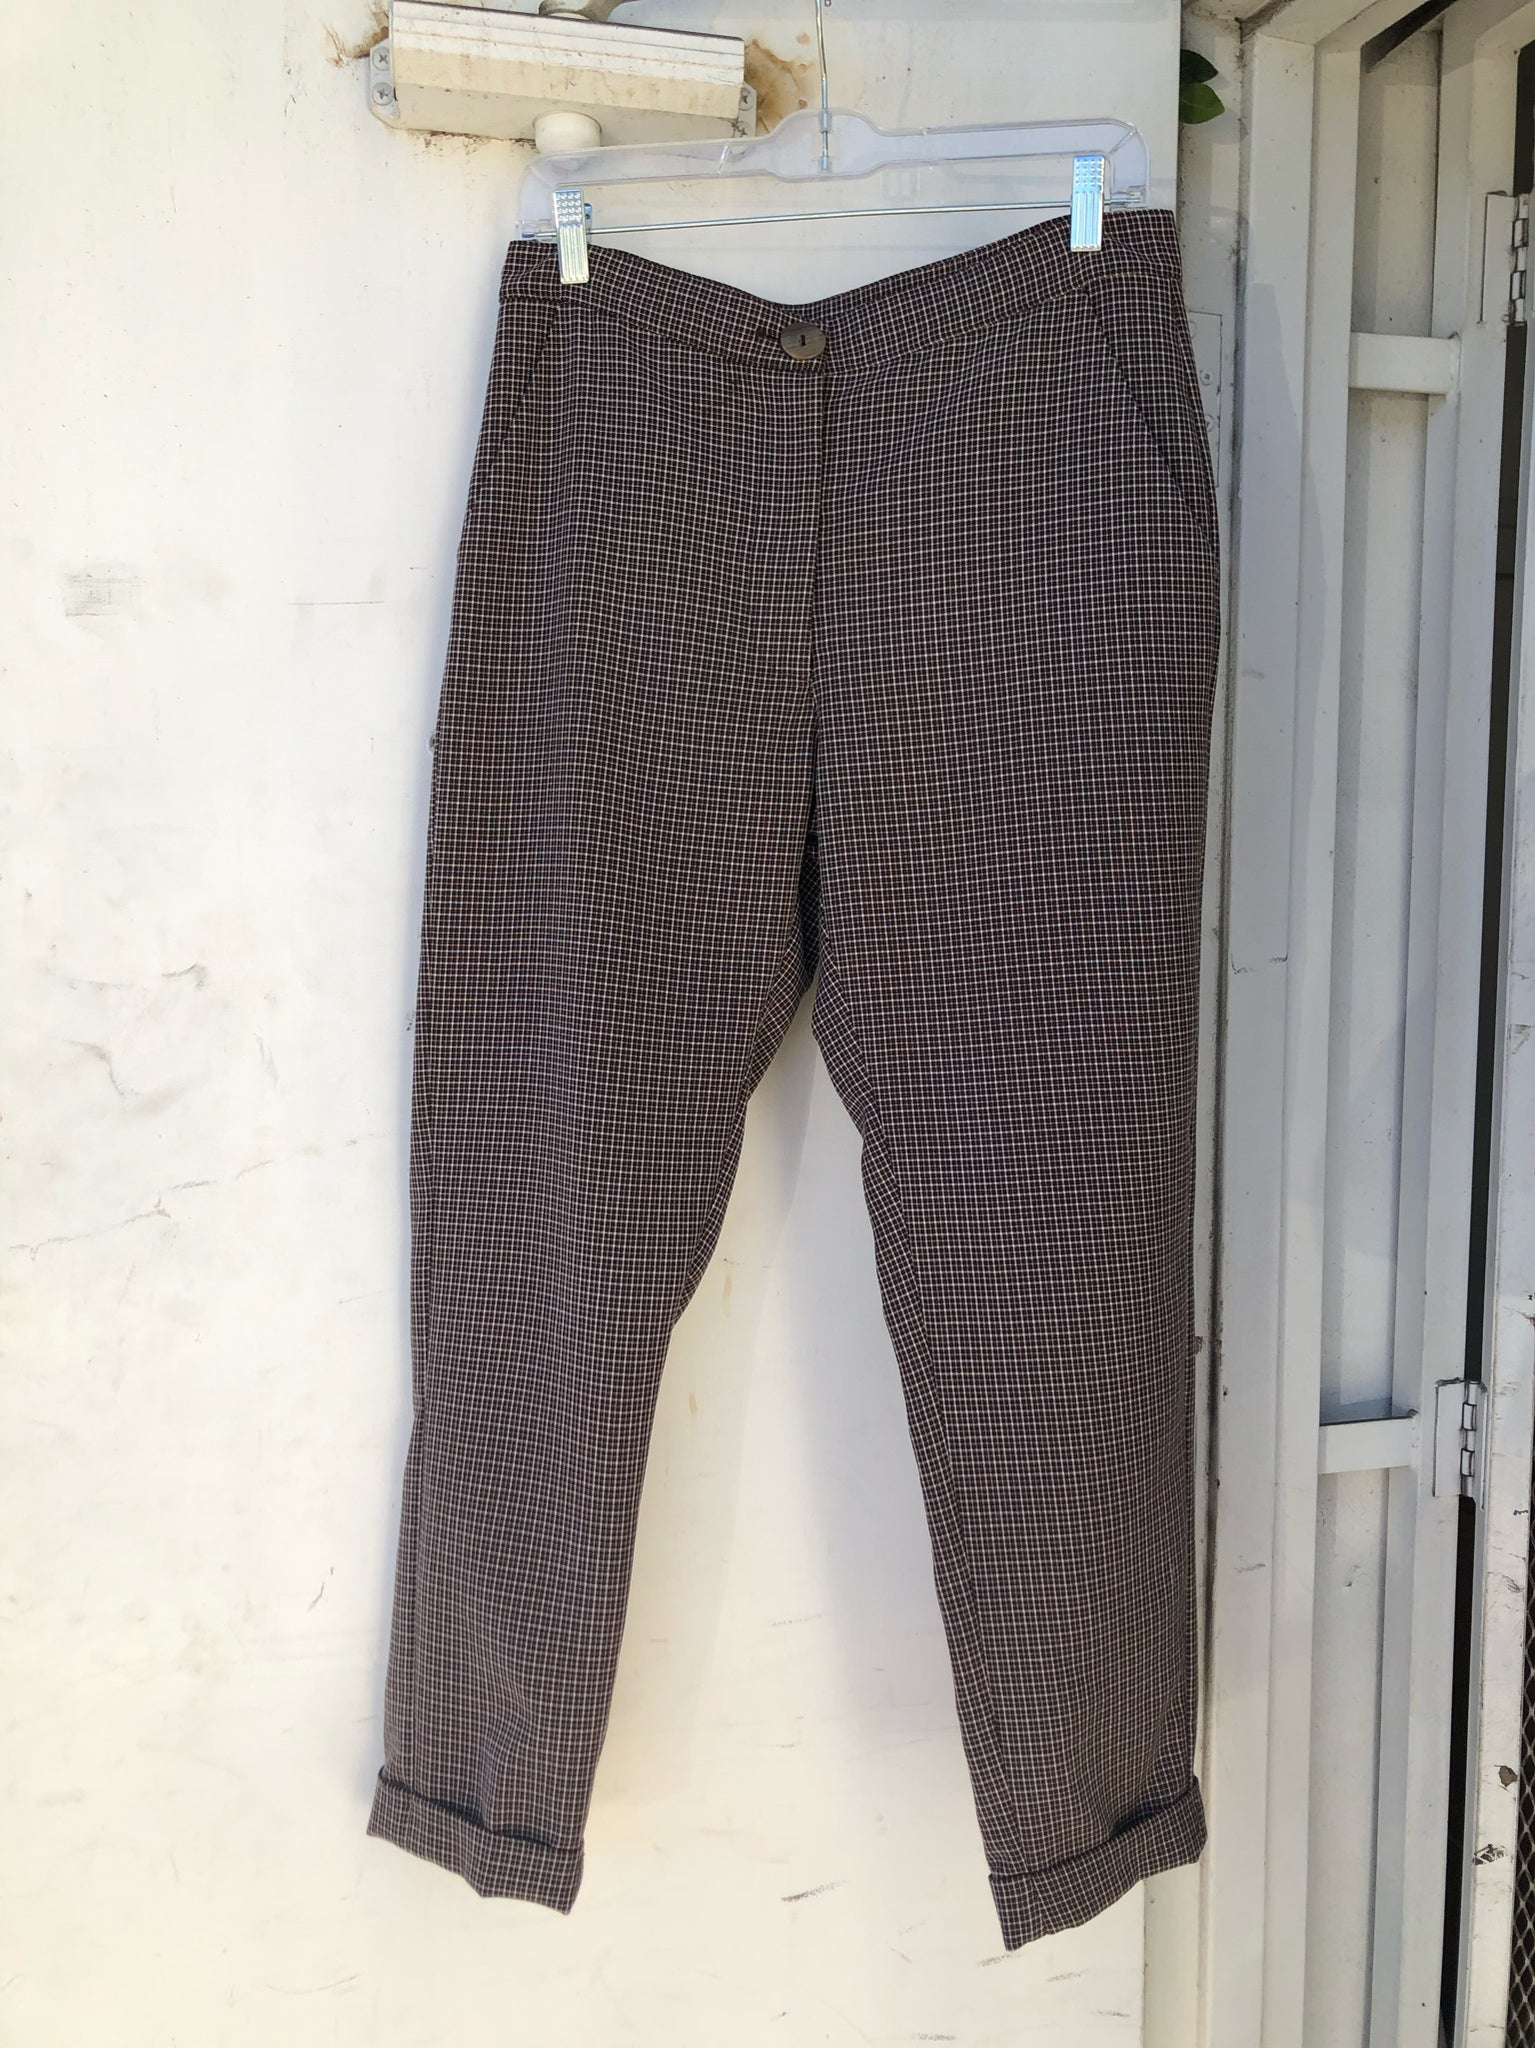 Dayandra Pant in Brown-Checkered - Size S